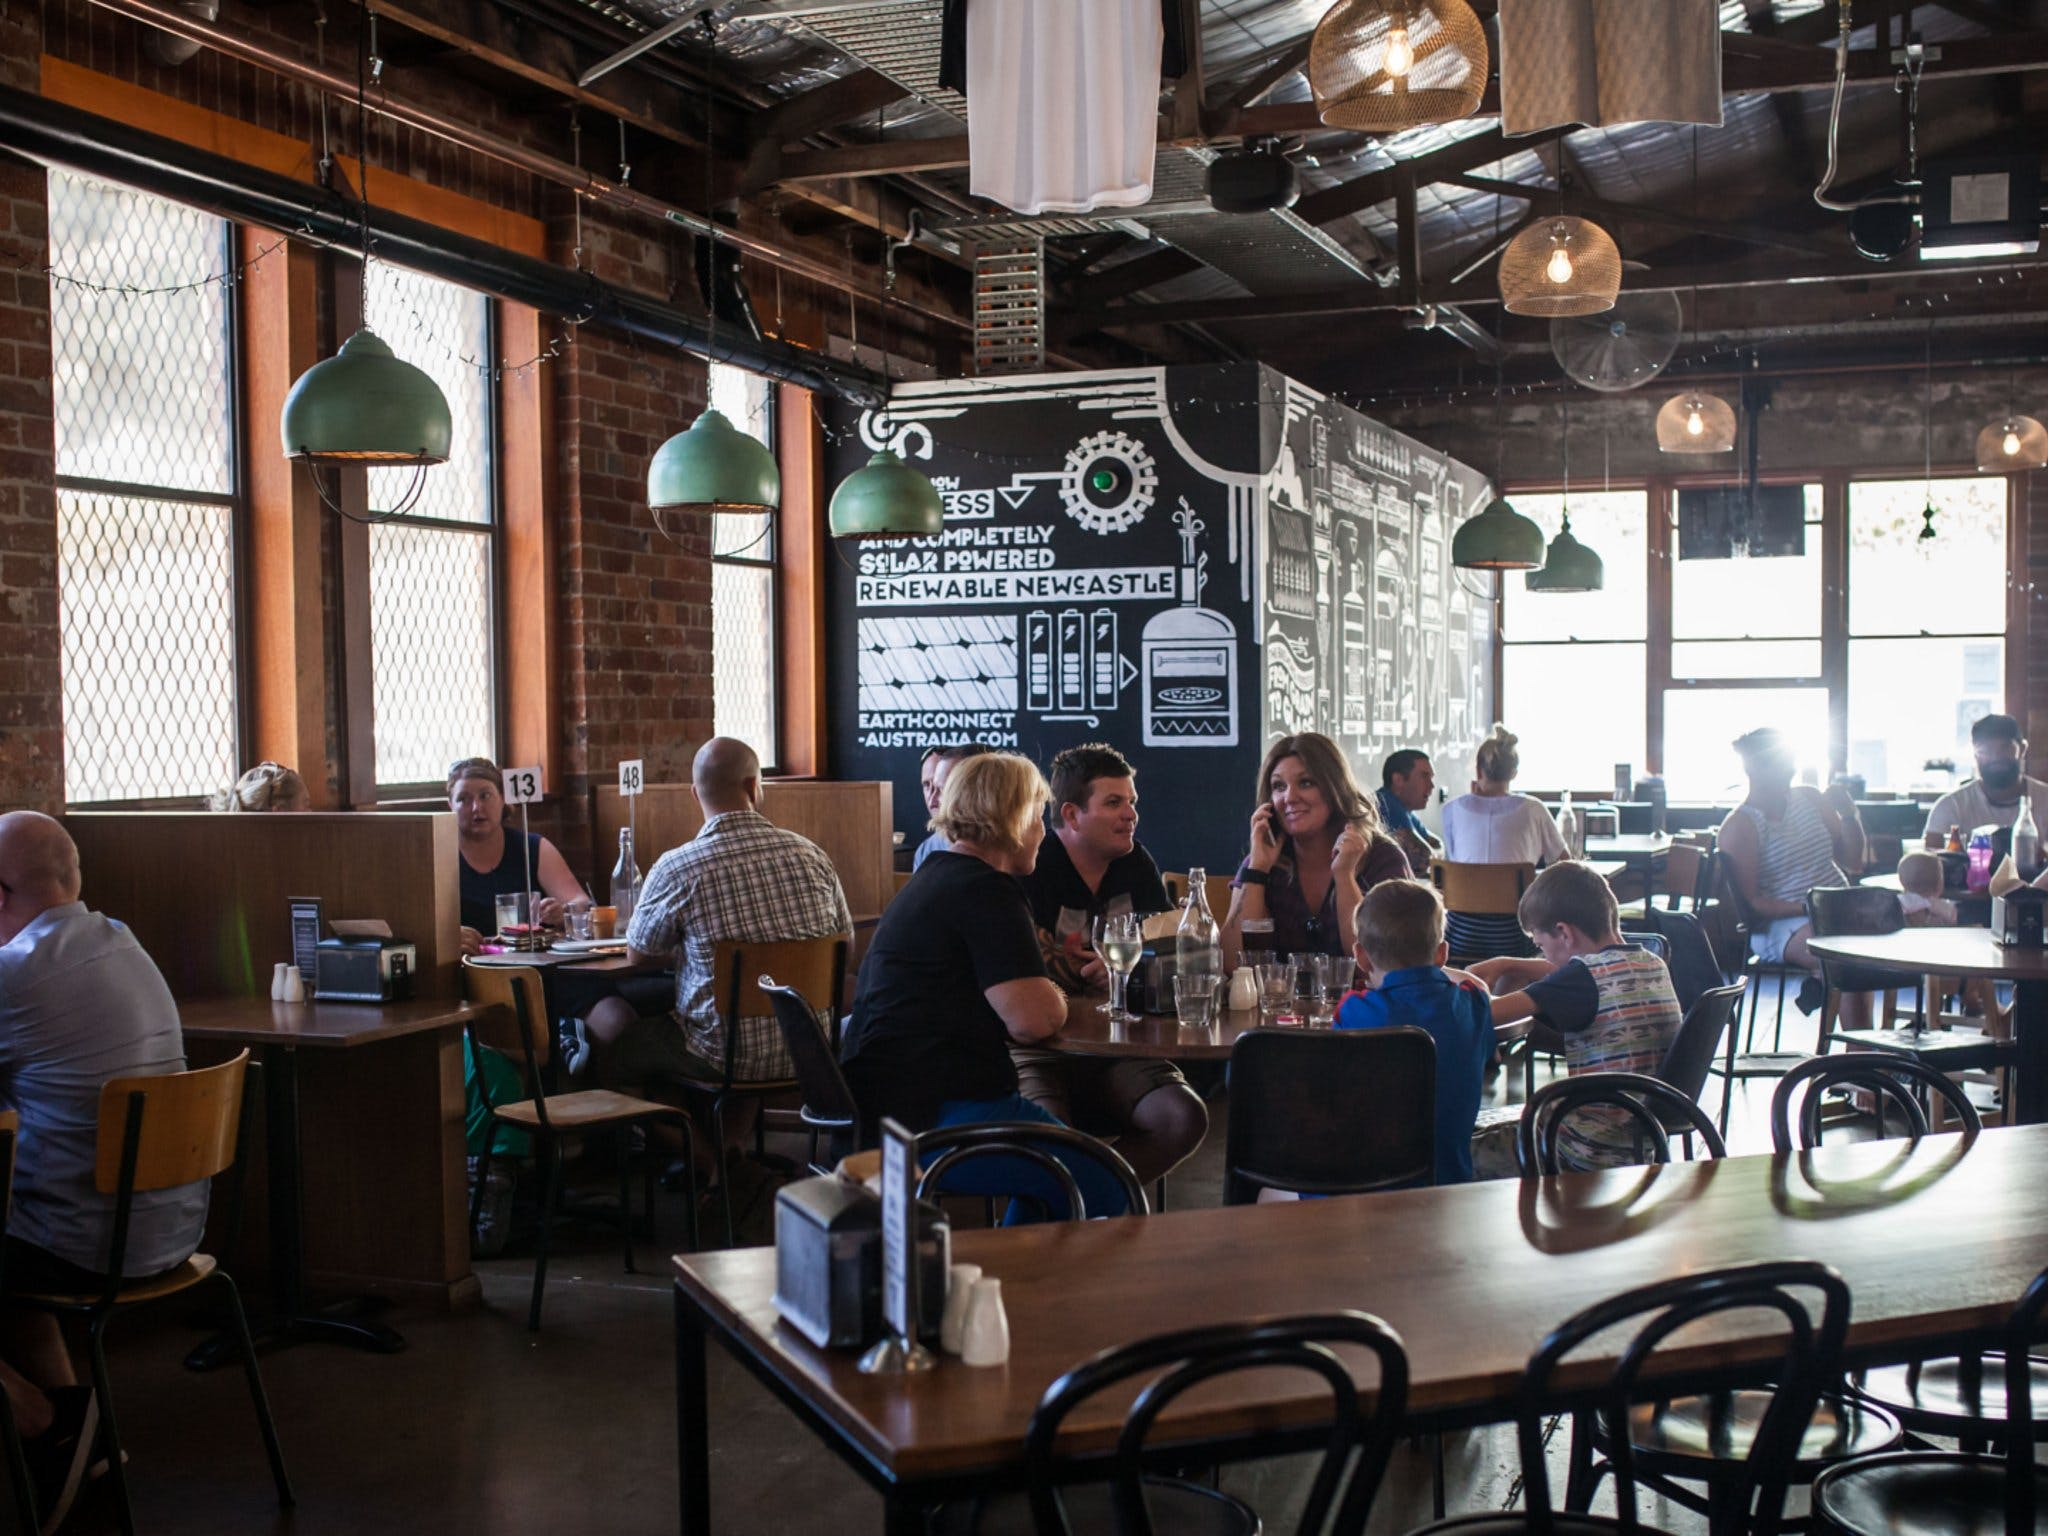 Many customers and young families dining inside FogHorn Brewhouse